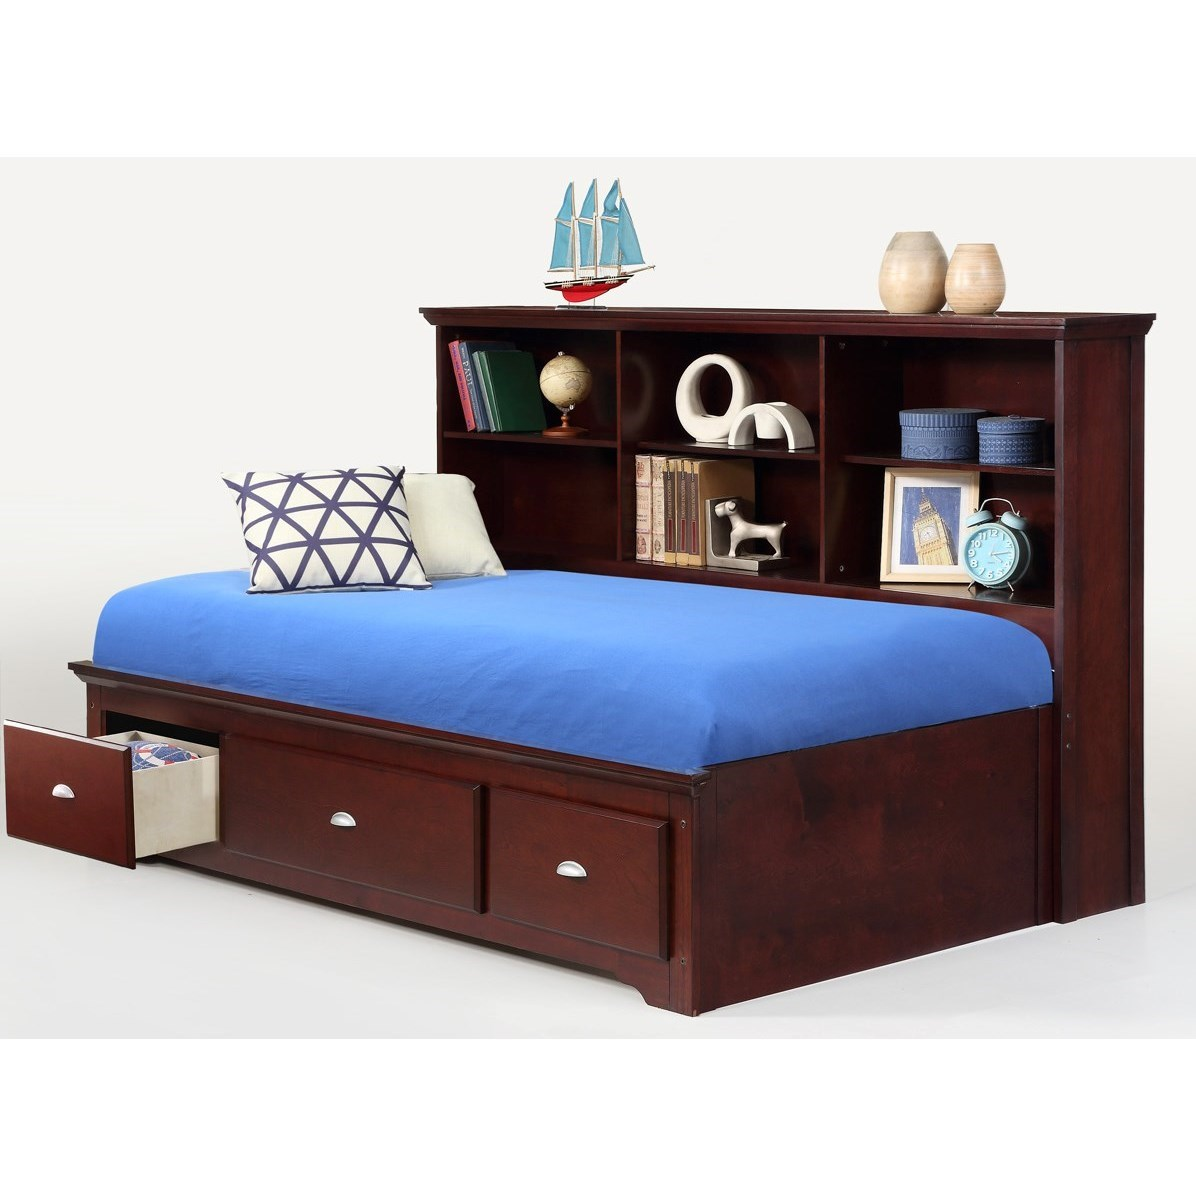 Bernards ethan full lounge bed with bookcase headboard for Royal headboard